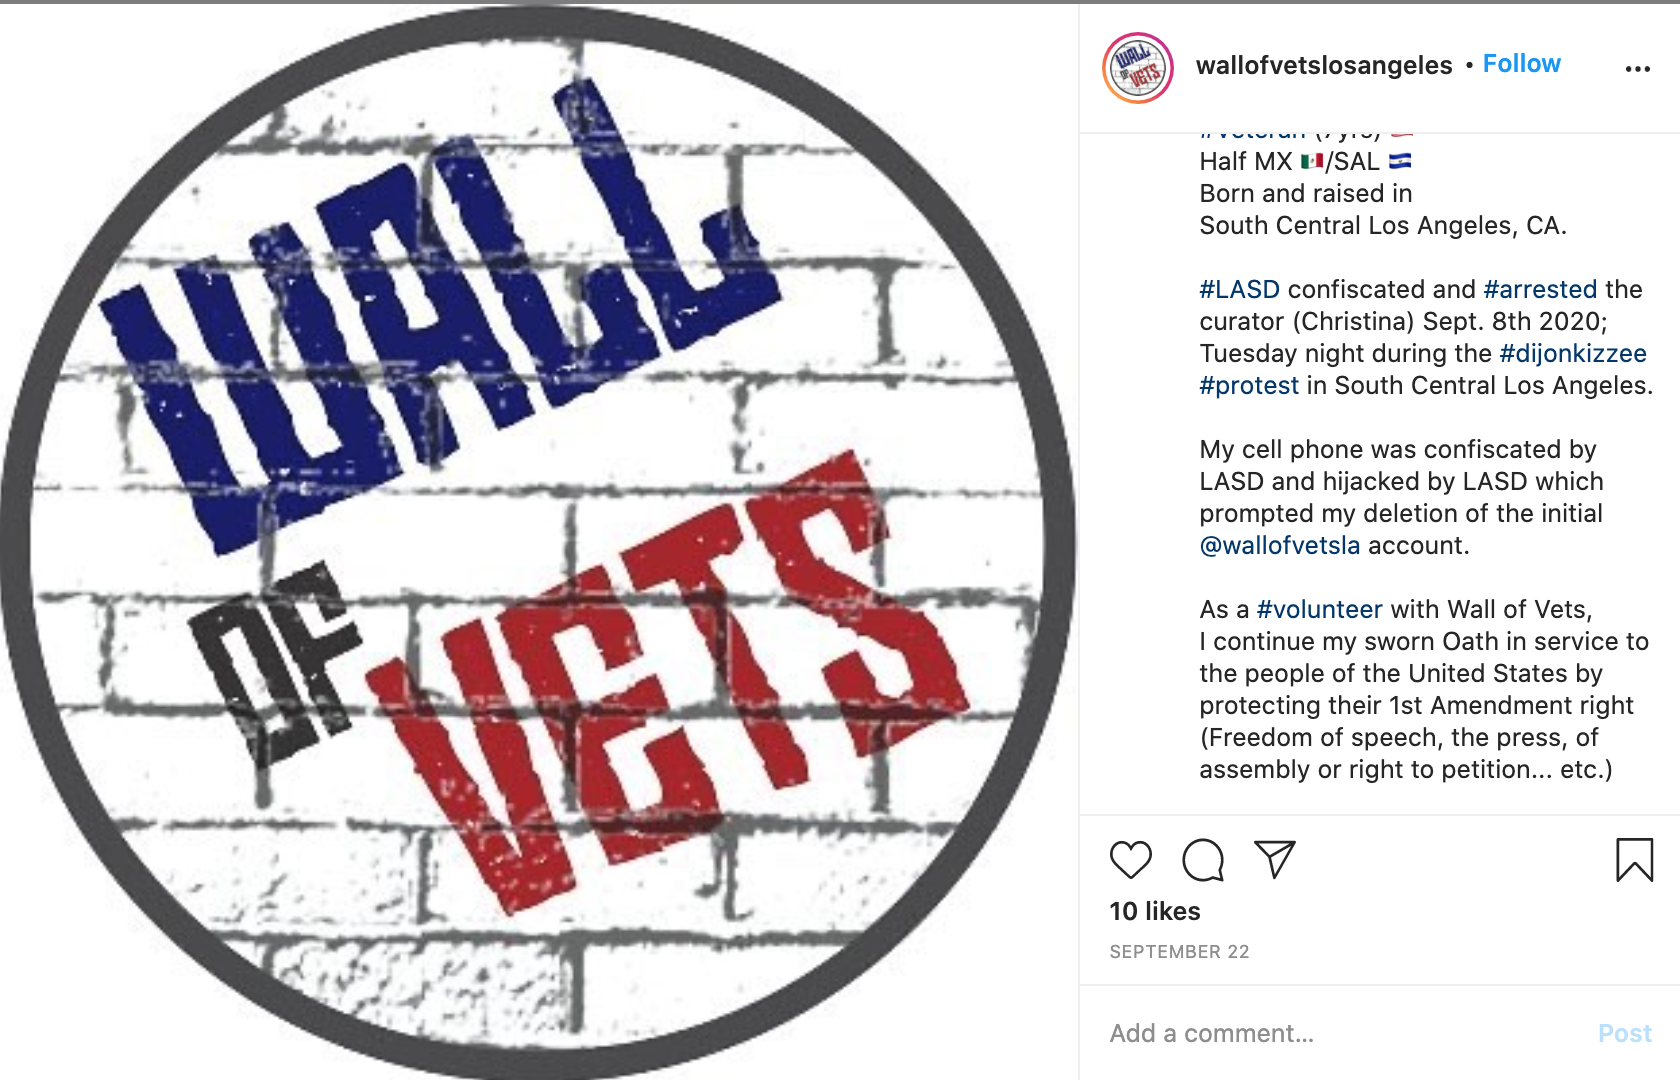 Screenshot of Wall of Vets' Sept. 22 Instagram post